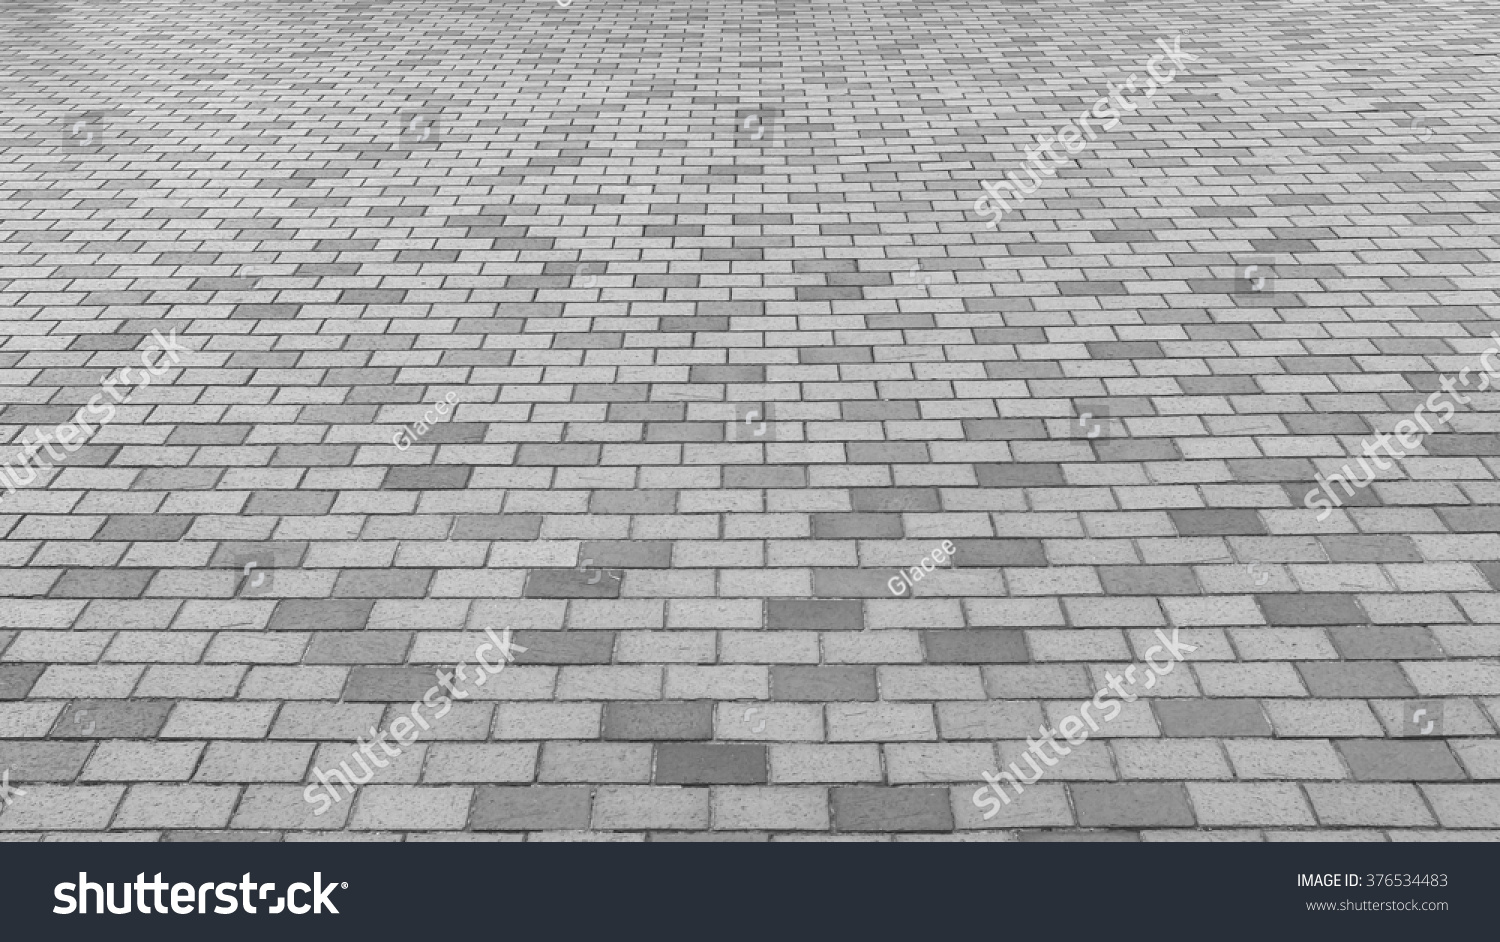 Perspective View Monotone Gray Brick Stone Pavement On The Ground For Street Road Sidewalk Driveway Pavers In Vintage Design Flooring